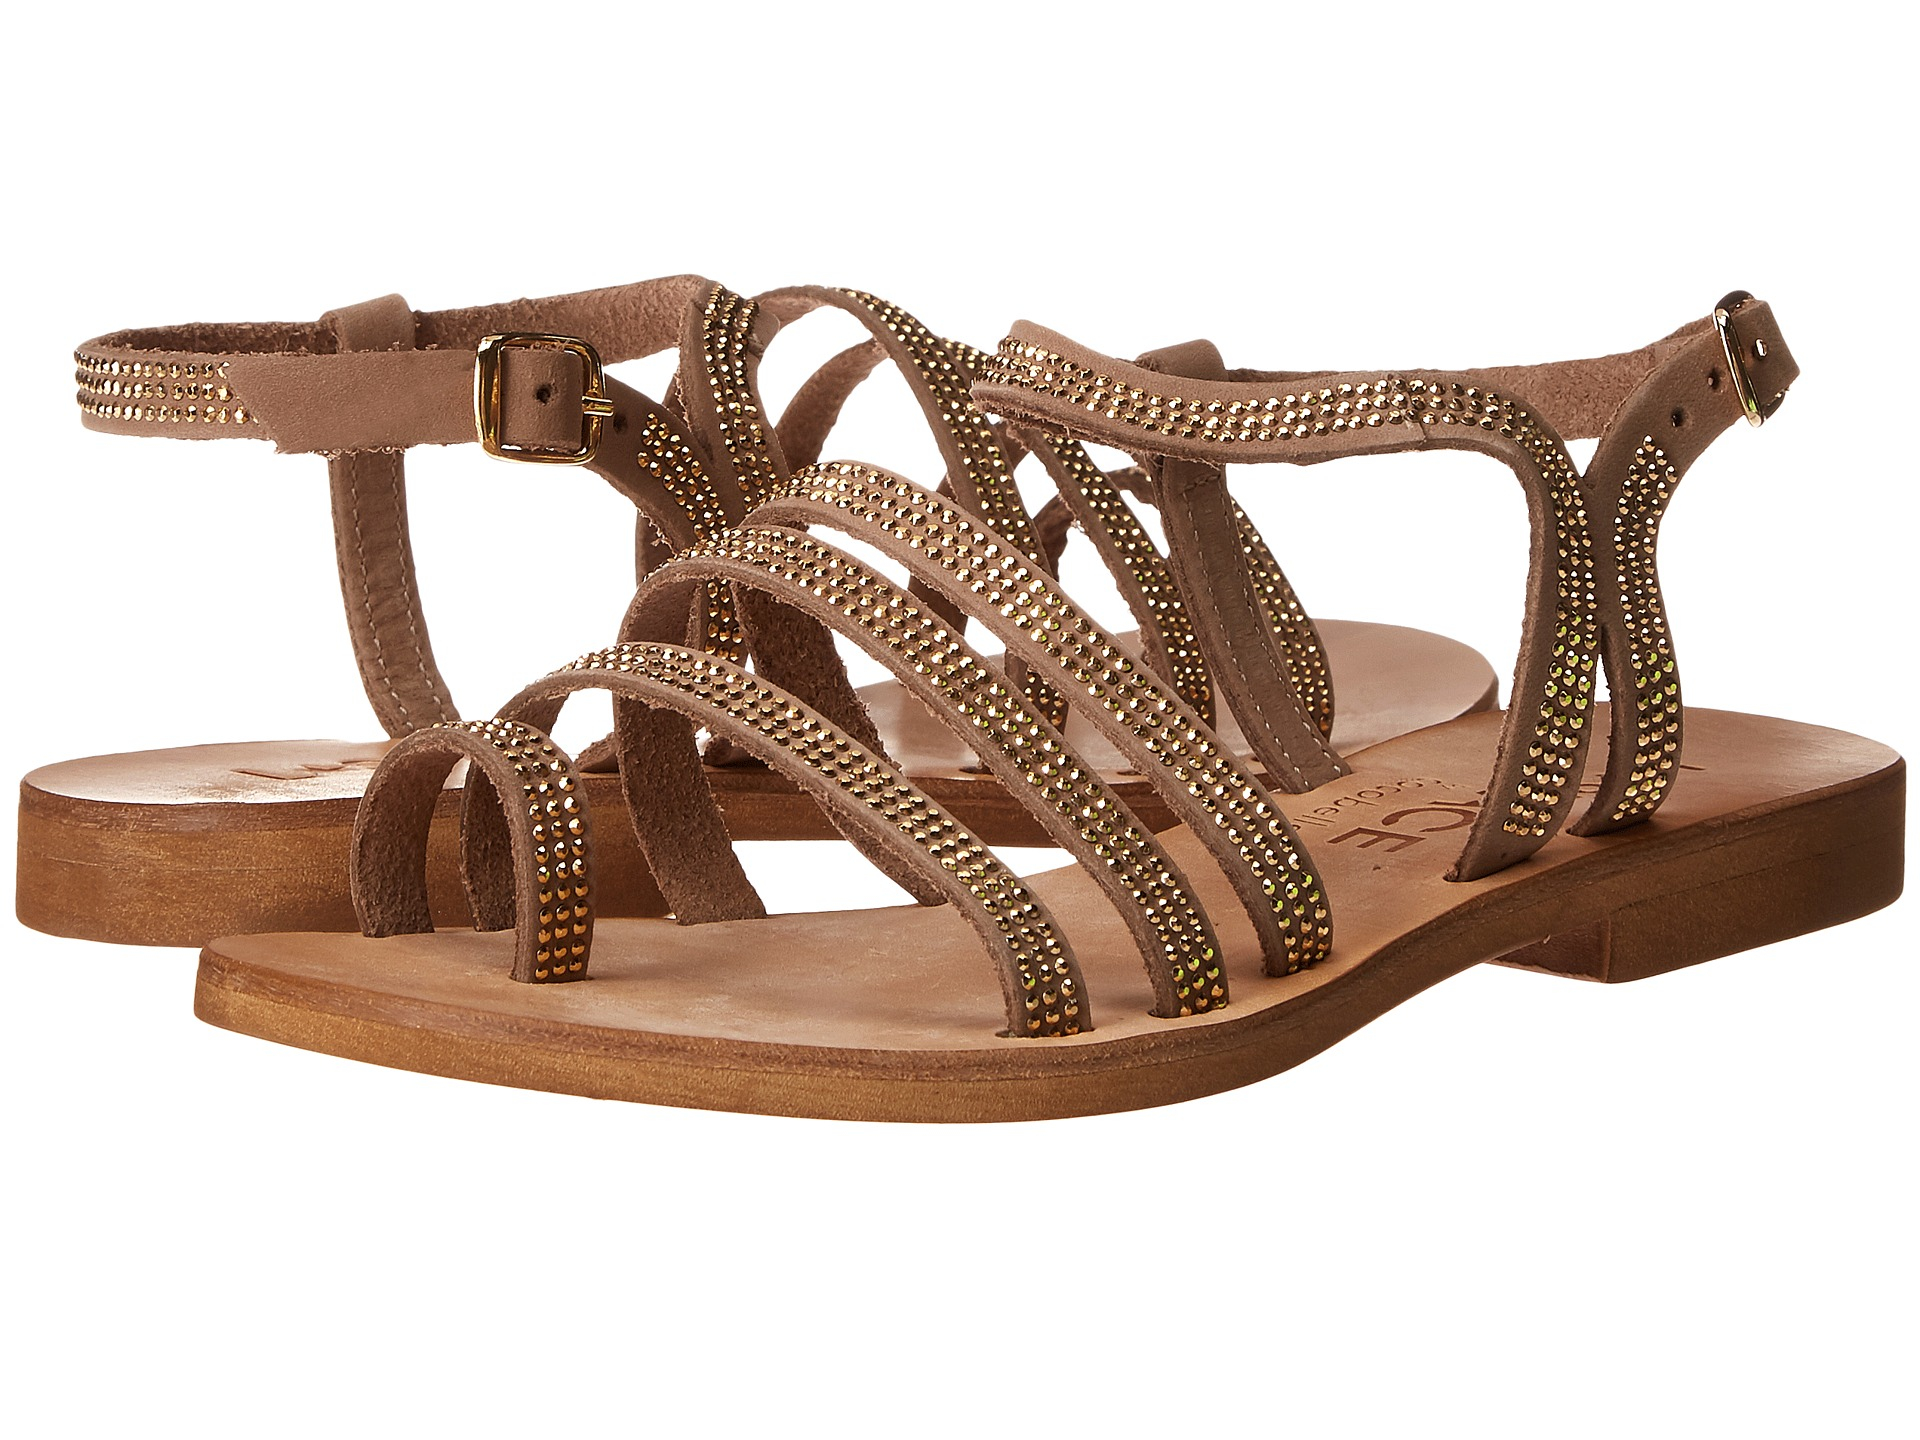 5741bc96d17229 Lyst - L Space Sicily Sandals in Brown